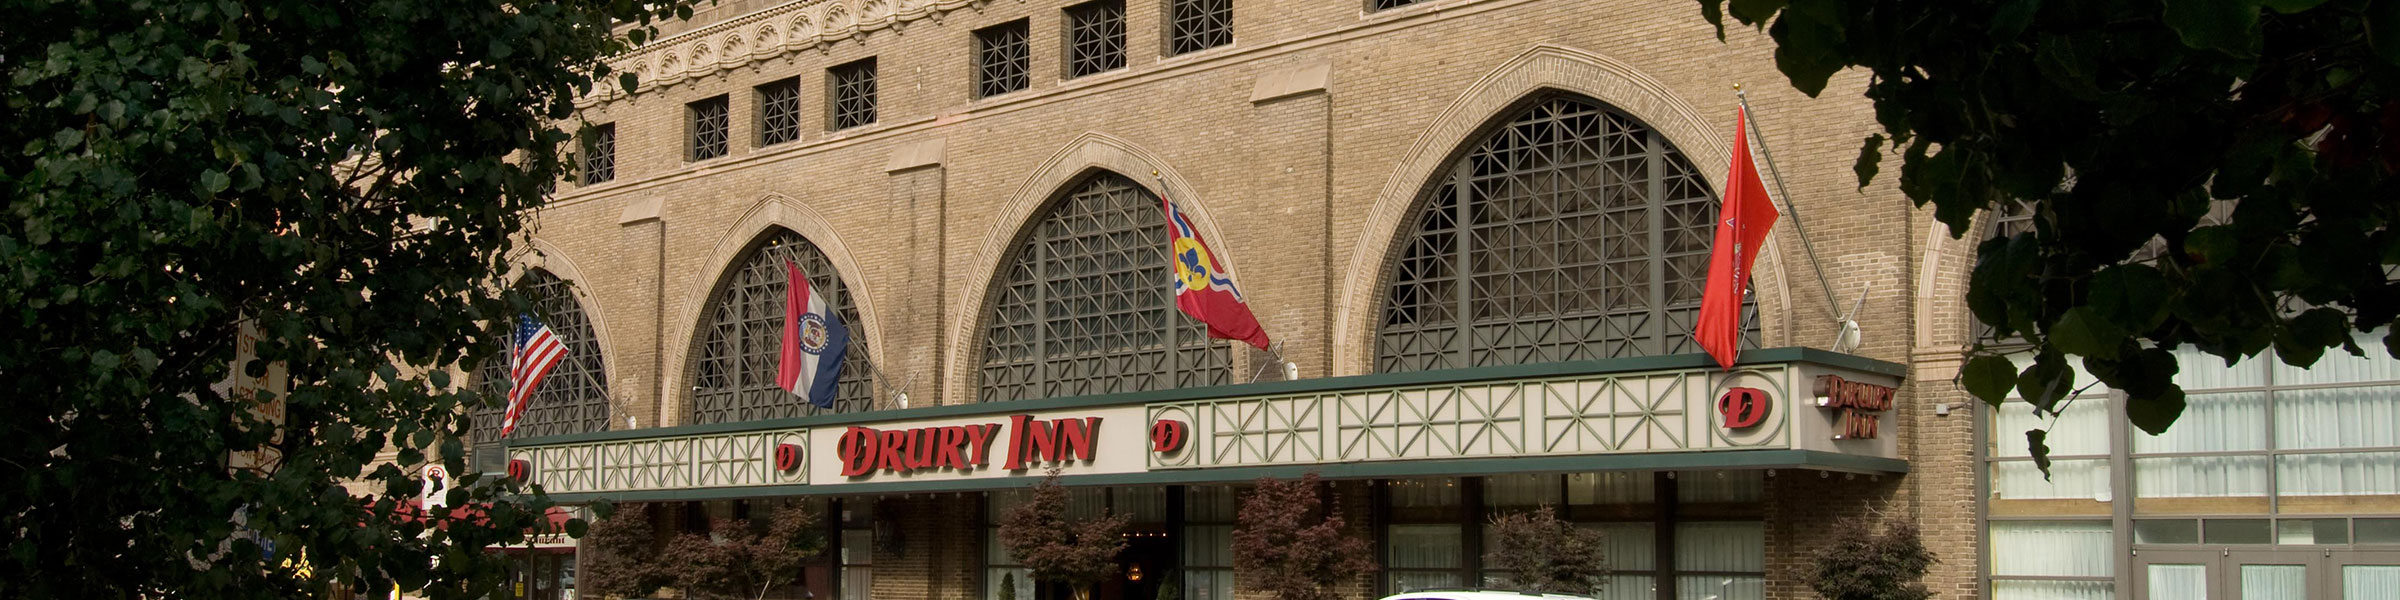 Drury Inn and Suites St. Louis Convention Center